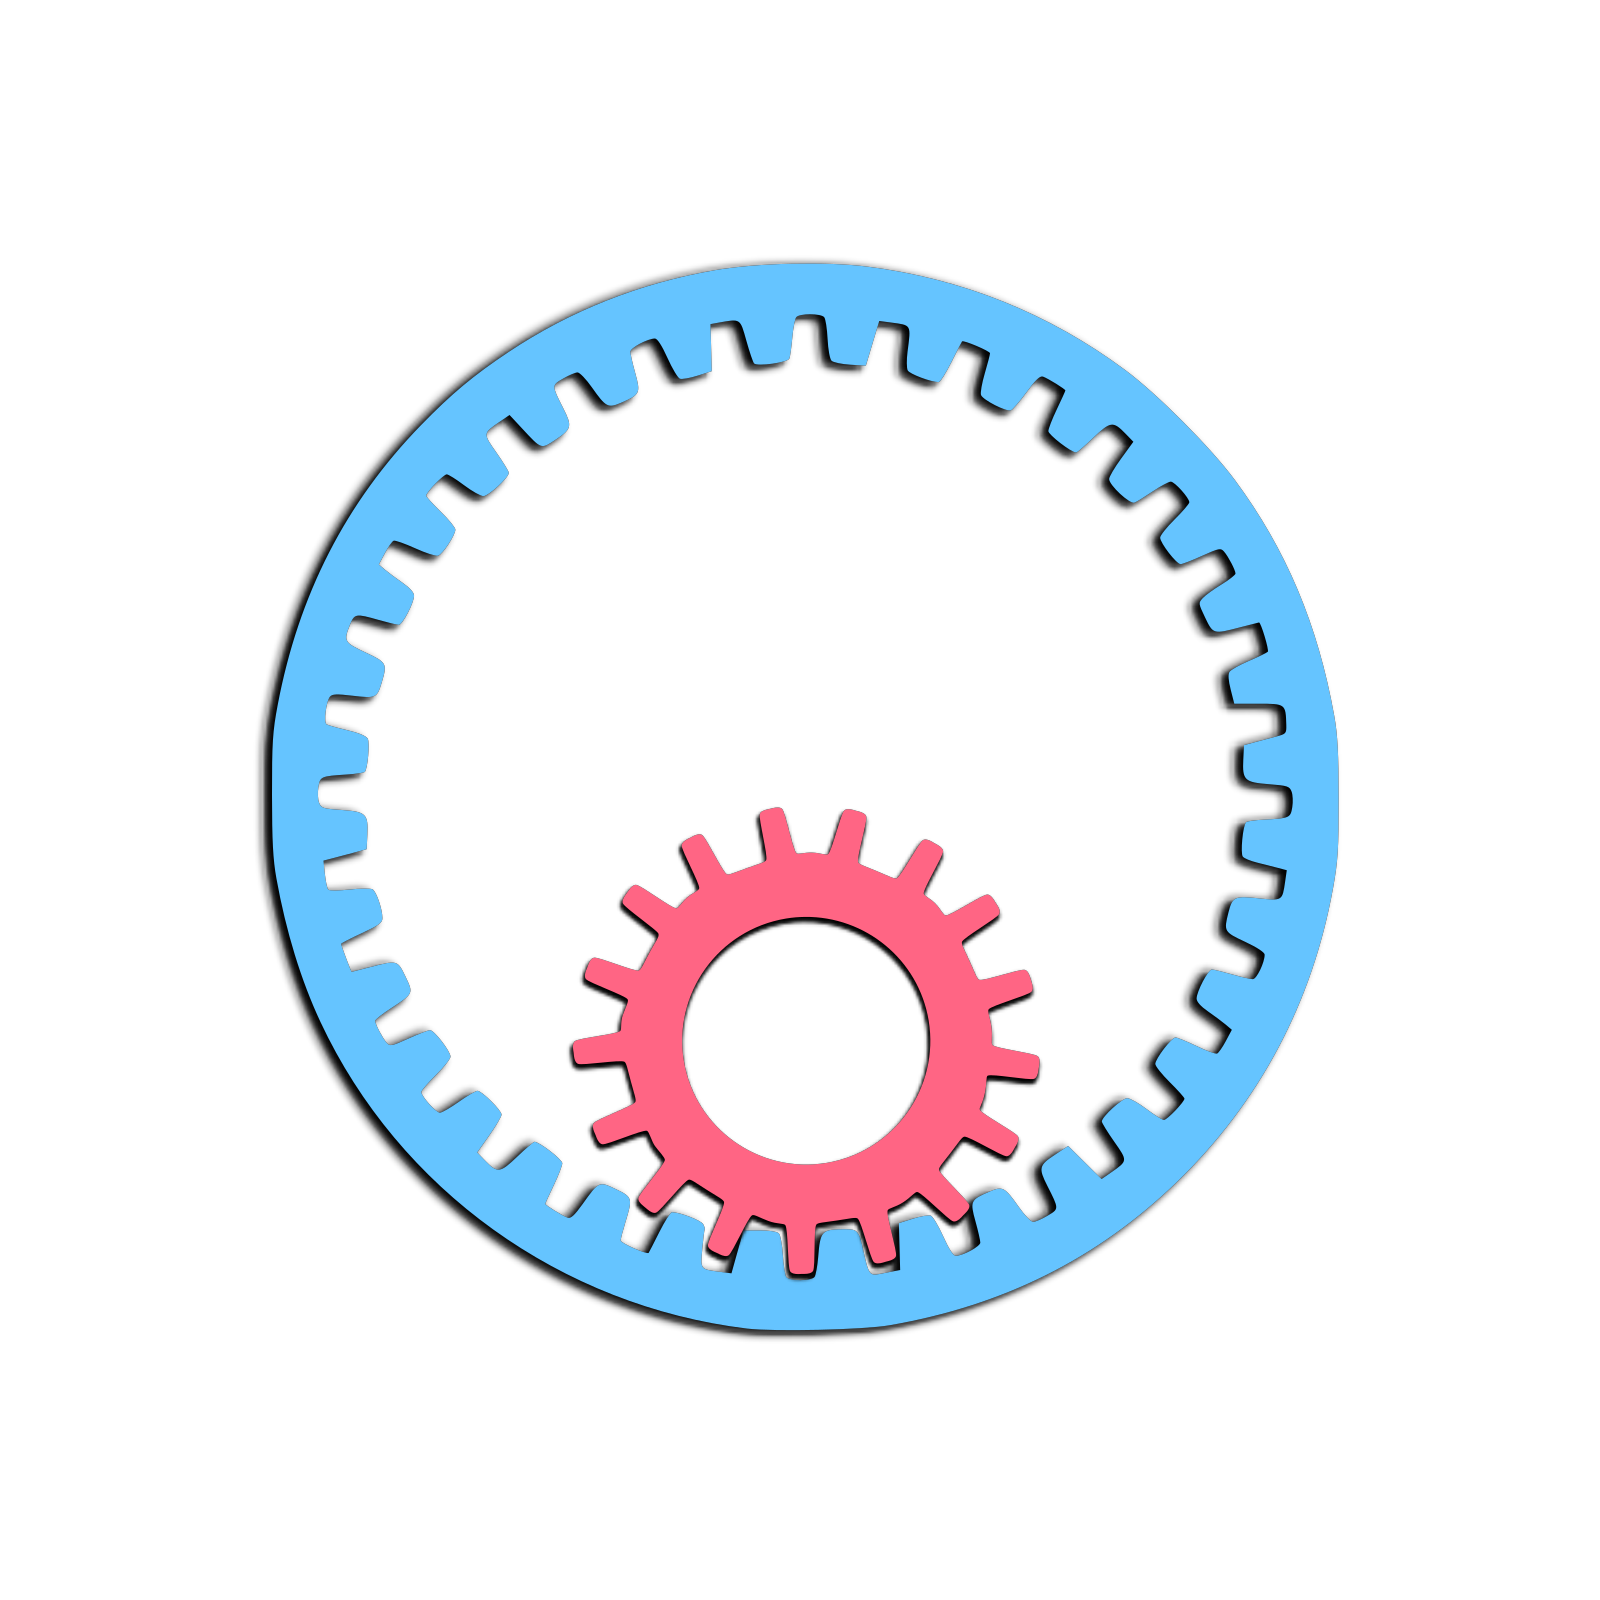 Gear Piece SVG Clip arts